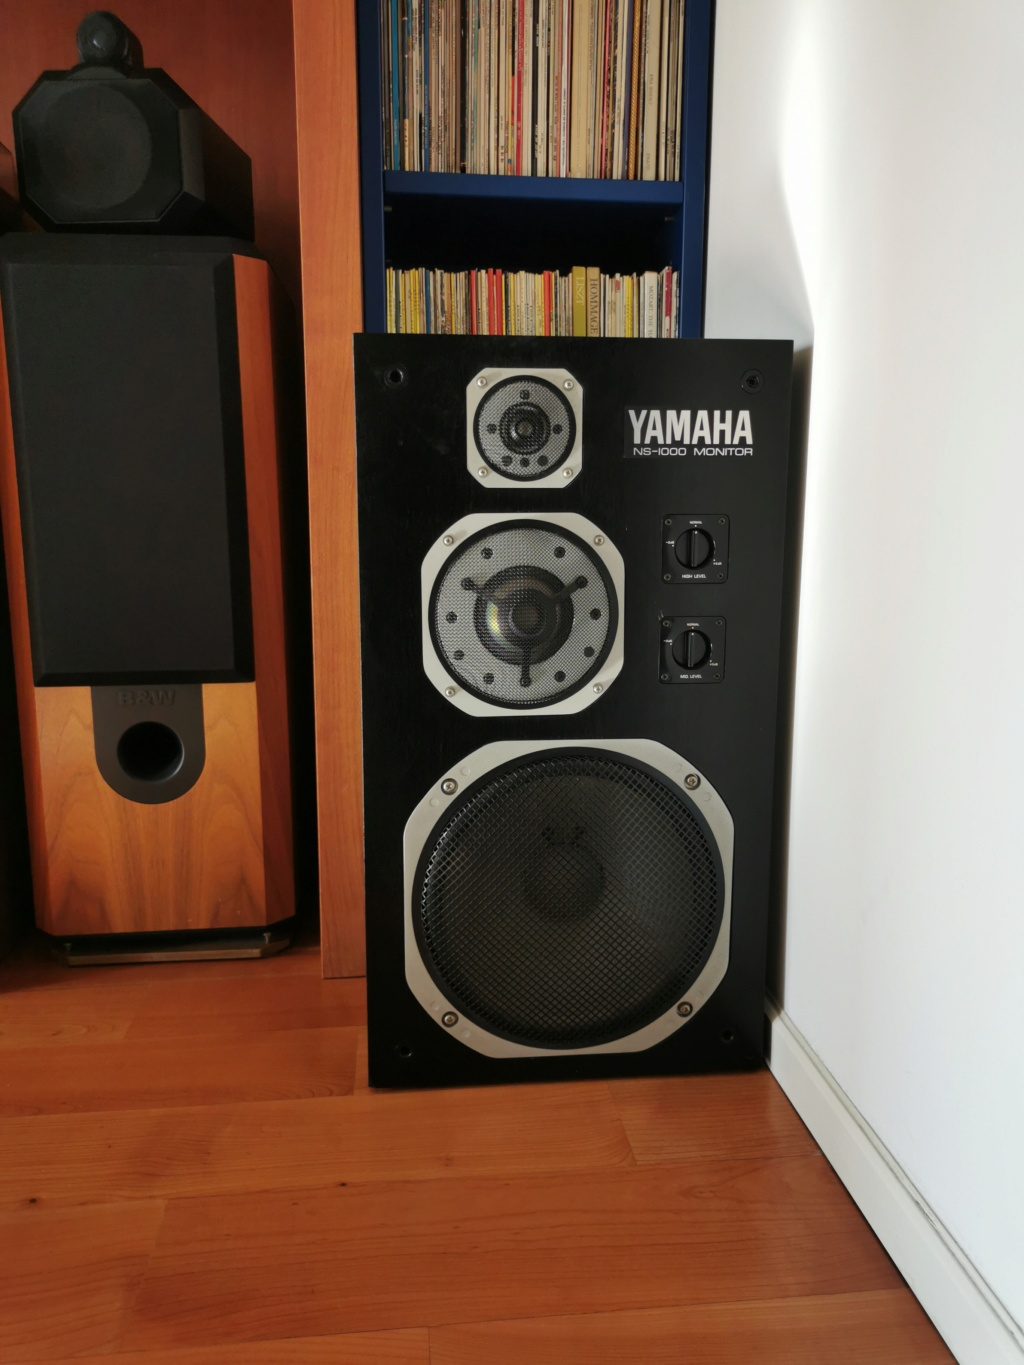 (TS) Yamaha ns-1000 monitor-natural sound speaker system 2_yama10